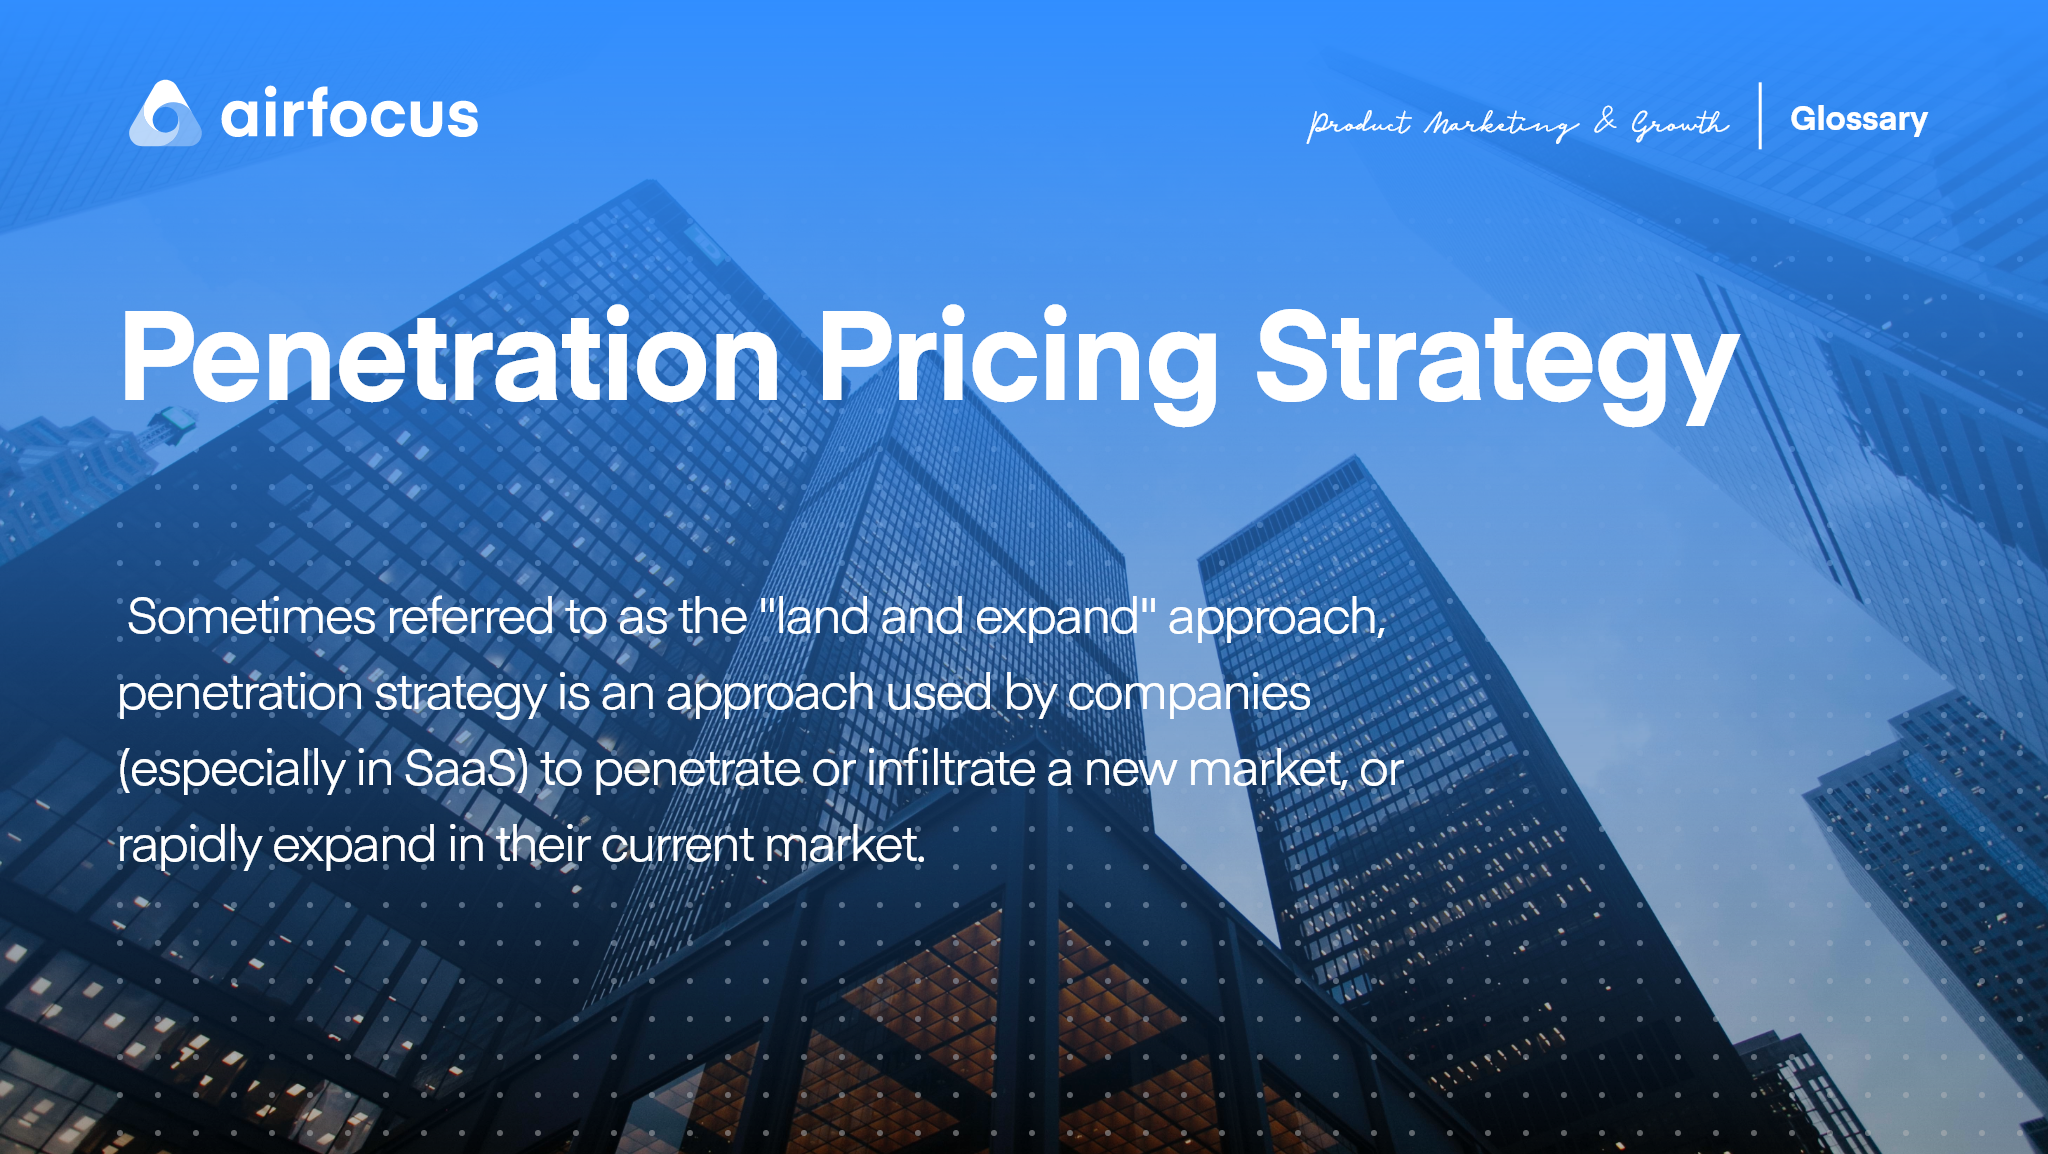 What is a Penetration Pricing Strategy